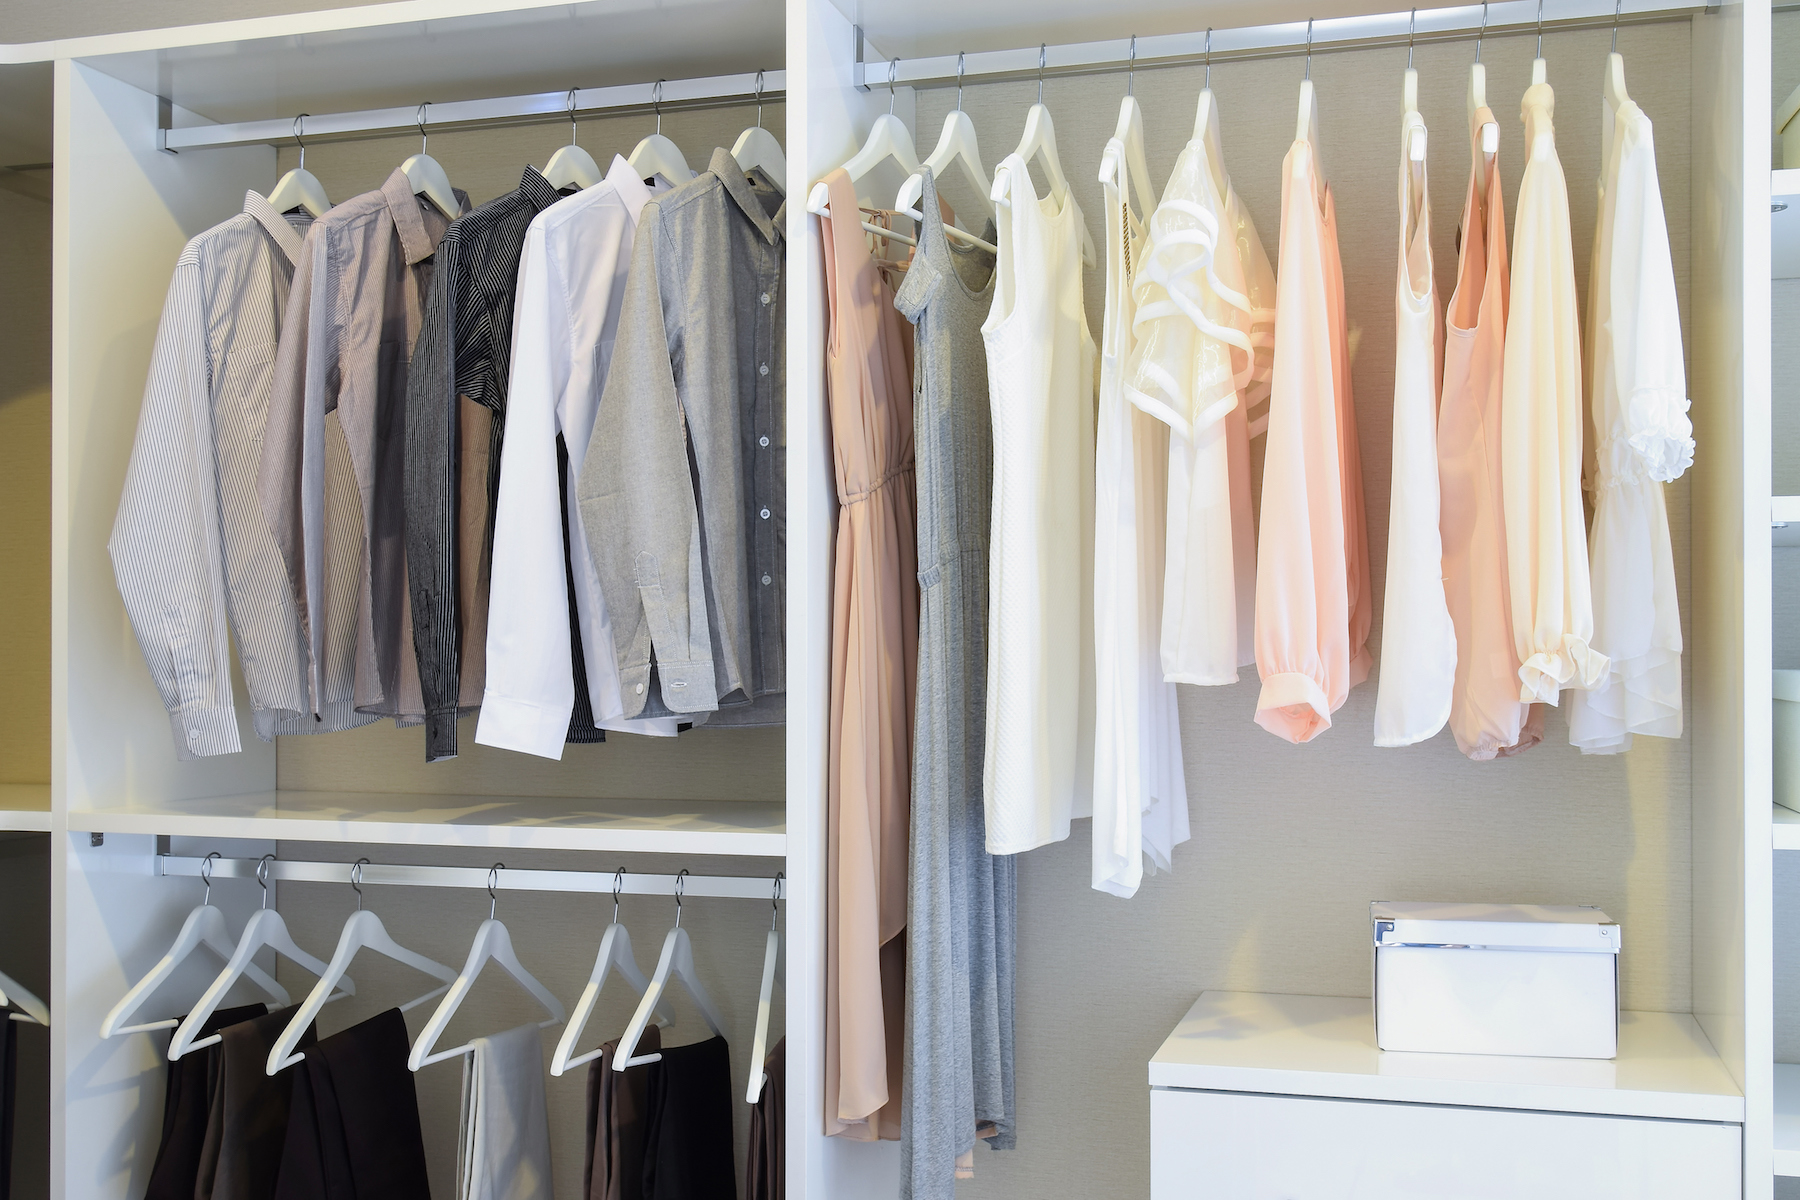 This Closet Trend Is Taking Over Pinterest—4 Organizing Lessons to Learn From It